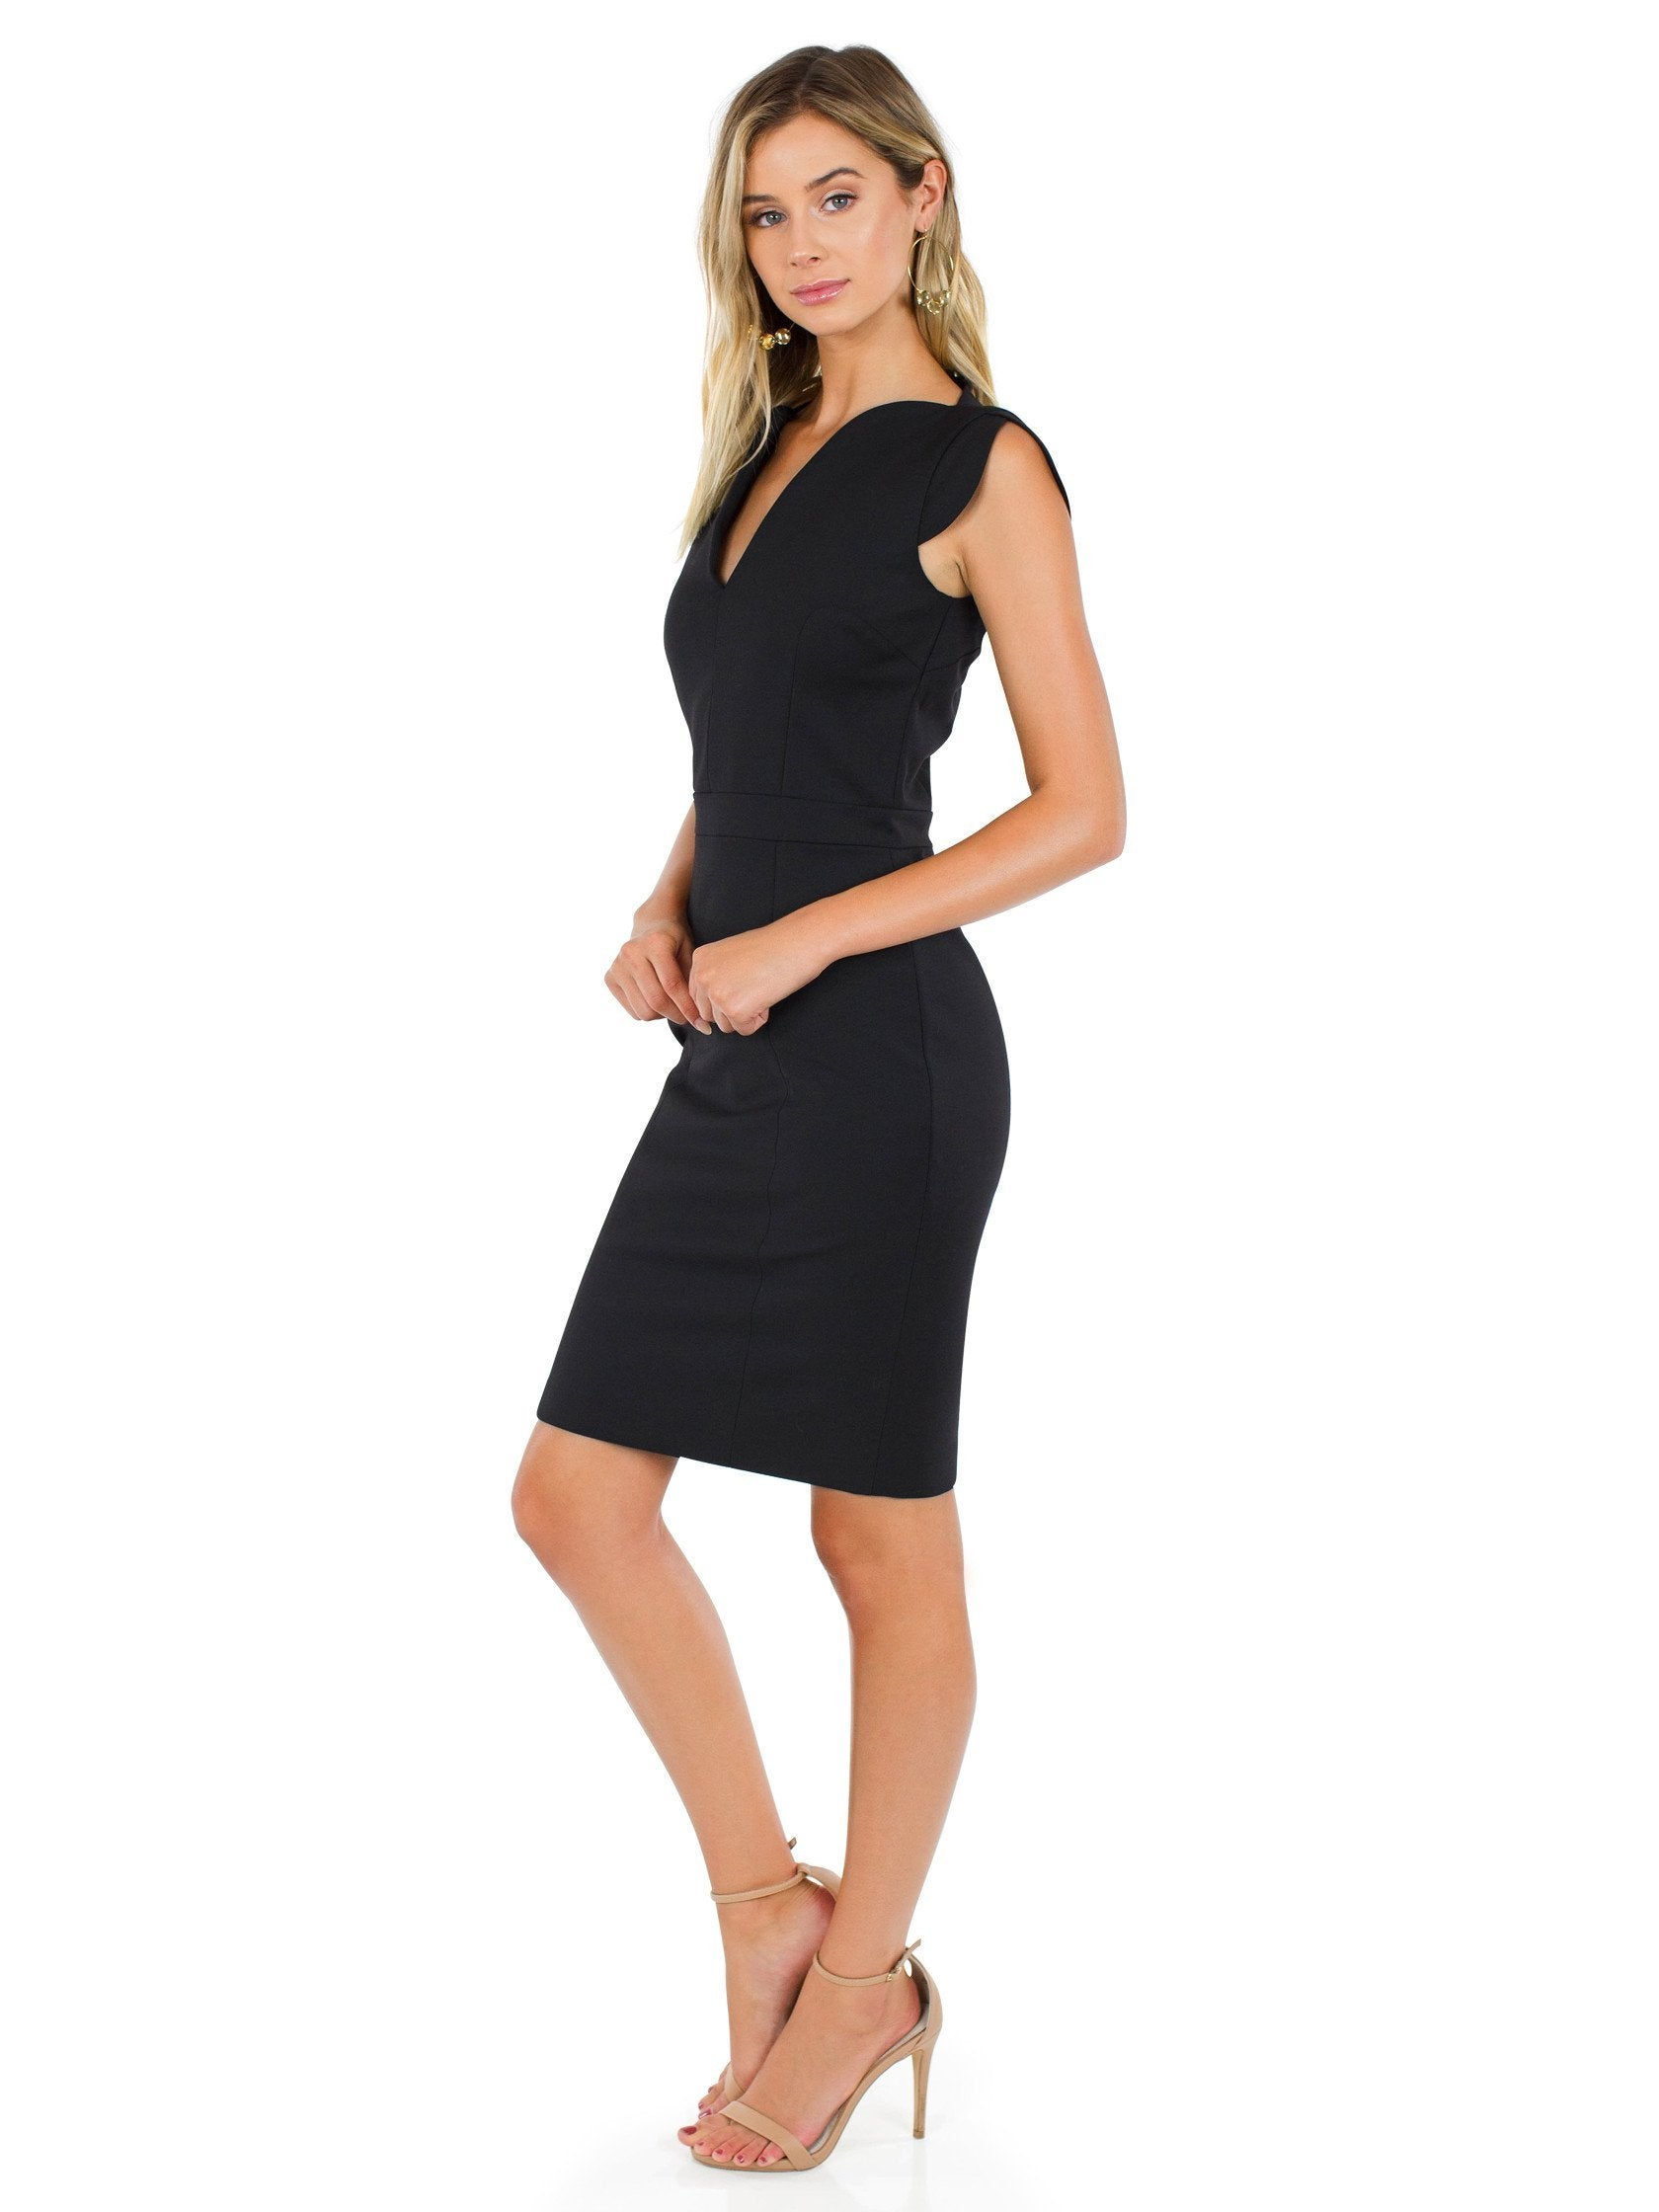 Women outfit in a dress rental from French Connection called Lolo Stretch Dress